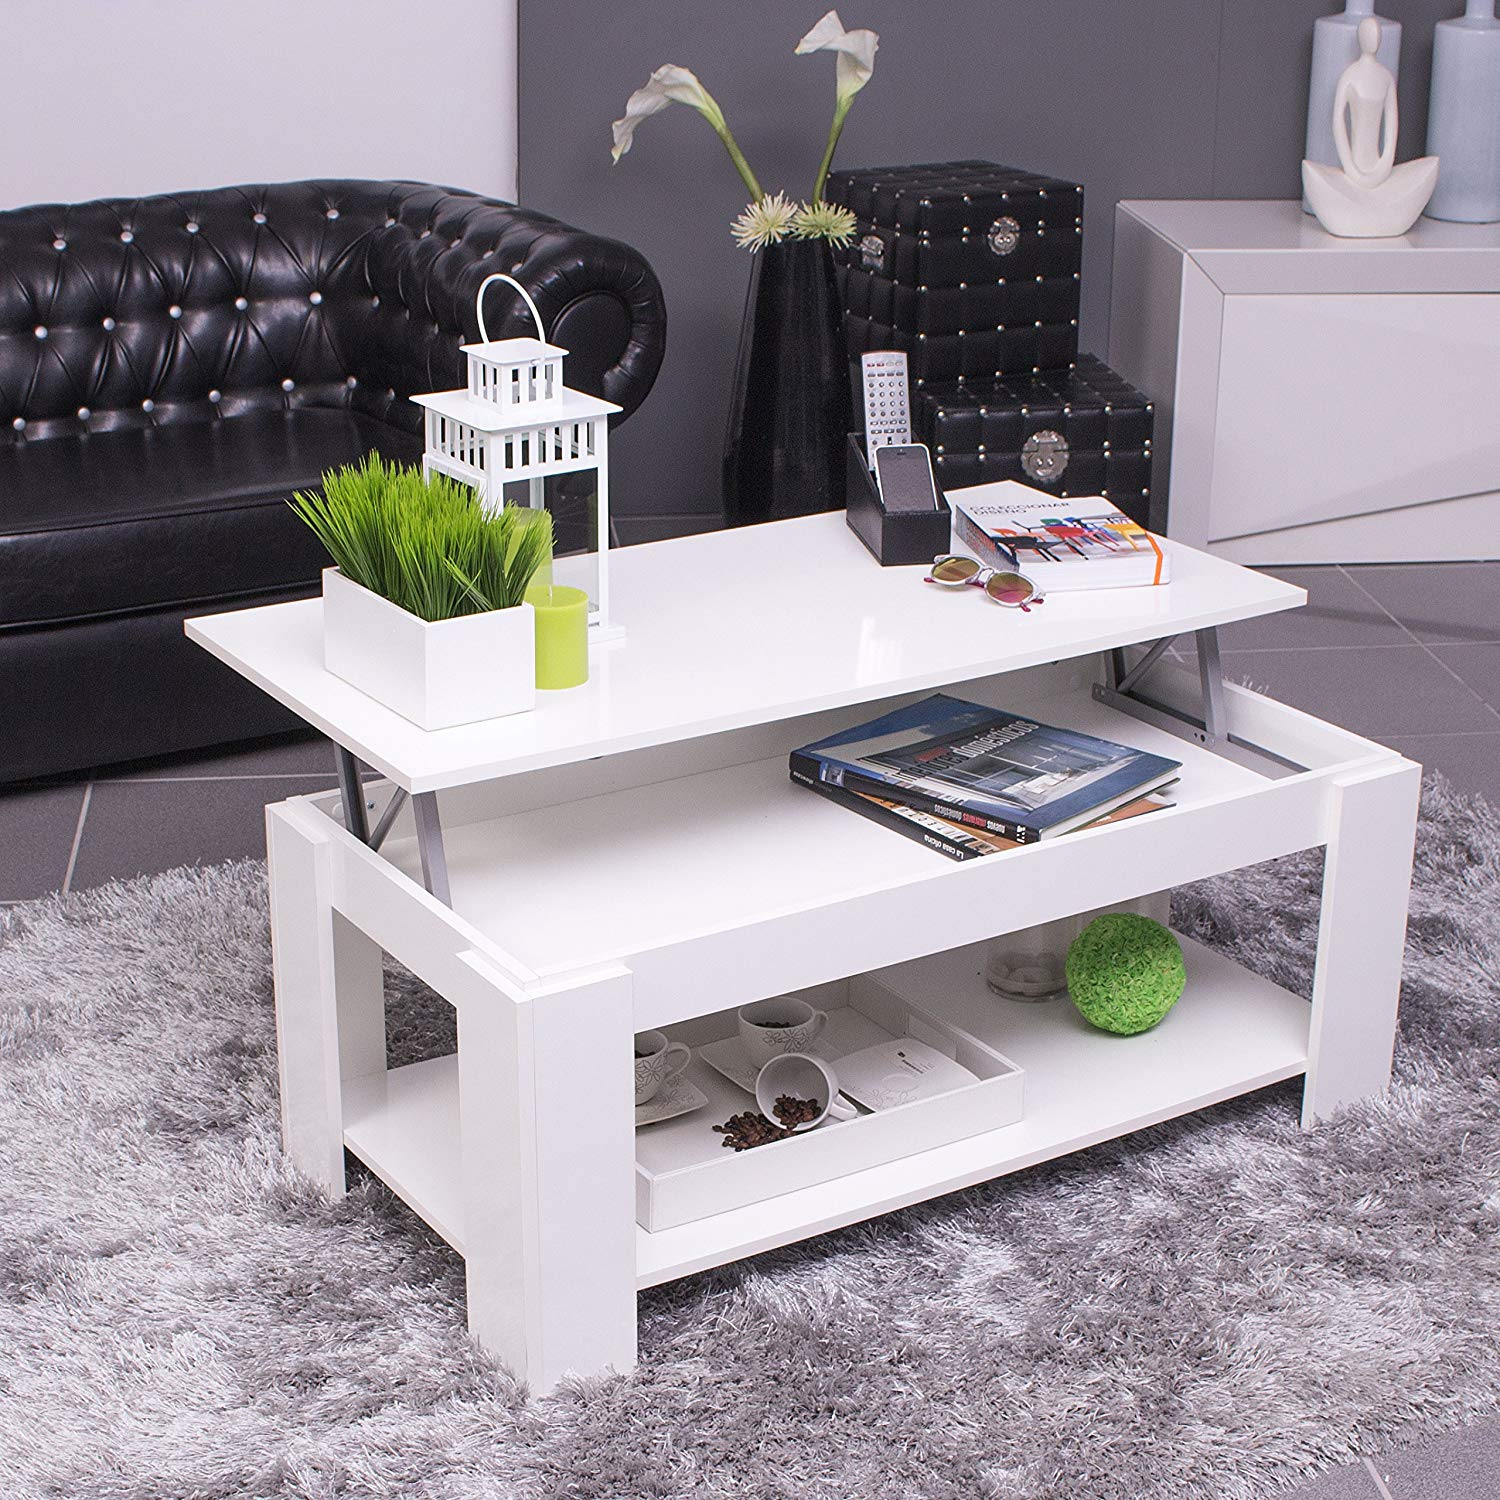 Ambit Lift Up Storage Coffee Table With Shelf In White Online4furniture Co Uk Online4furniture